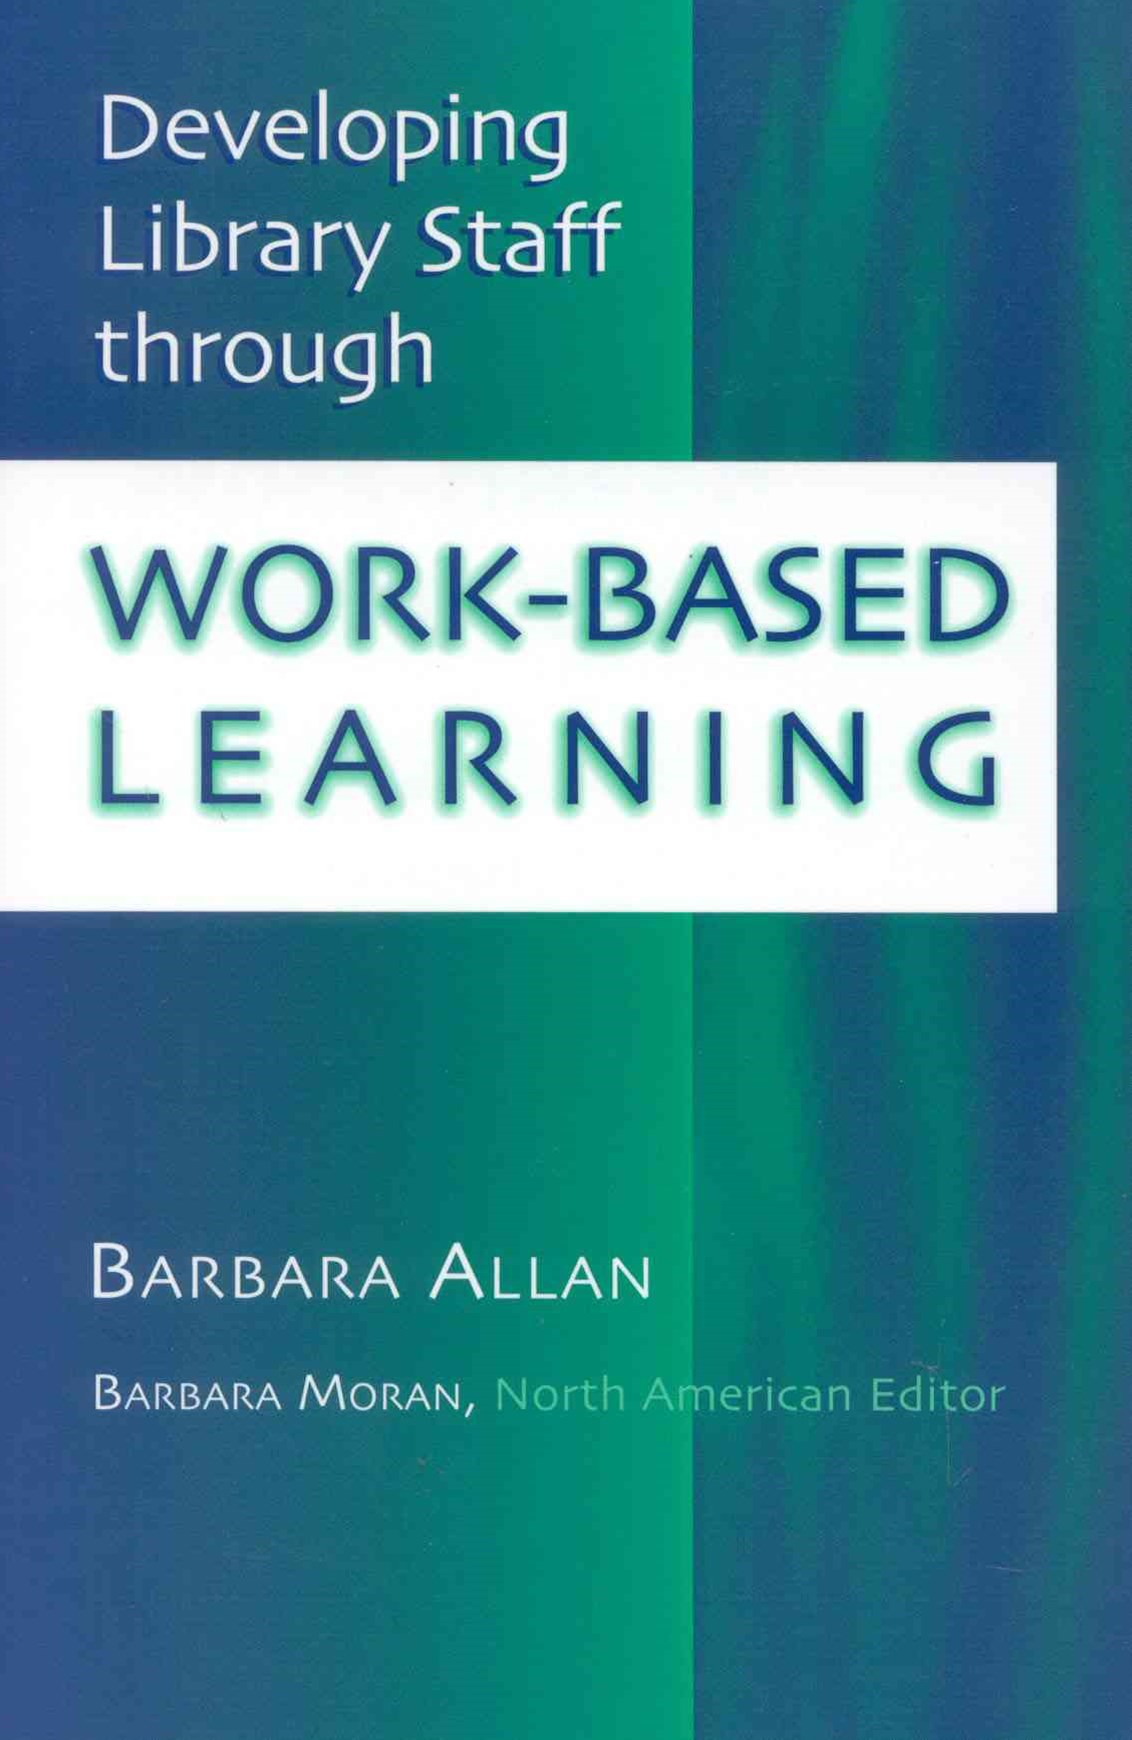 Developing Library Staff Through Work-Based Learning